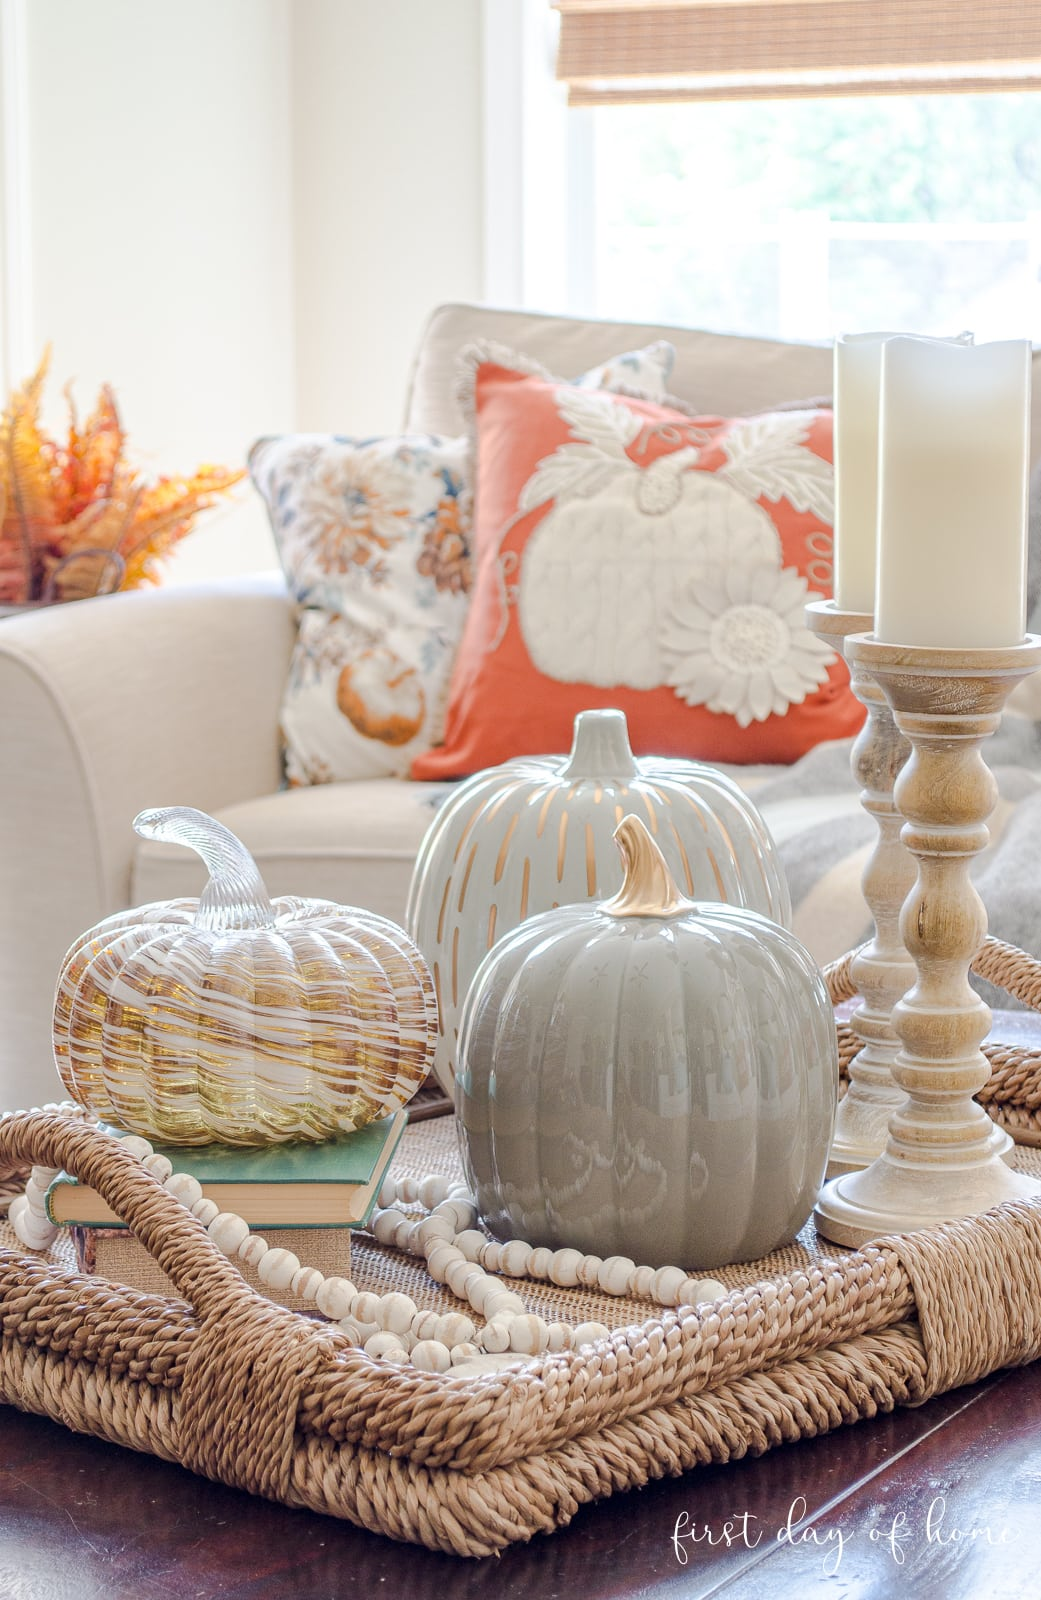 Fall living room centerpiece for coffee table with candle holders, pumpkins and beads